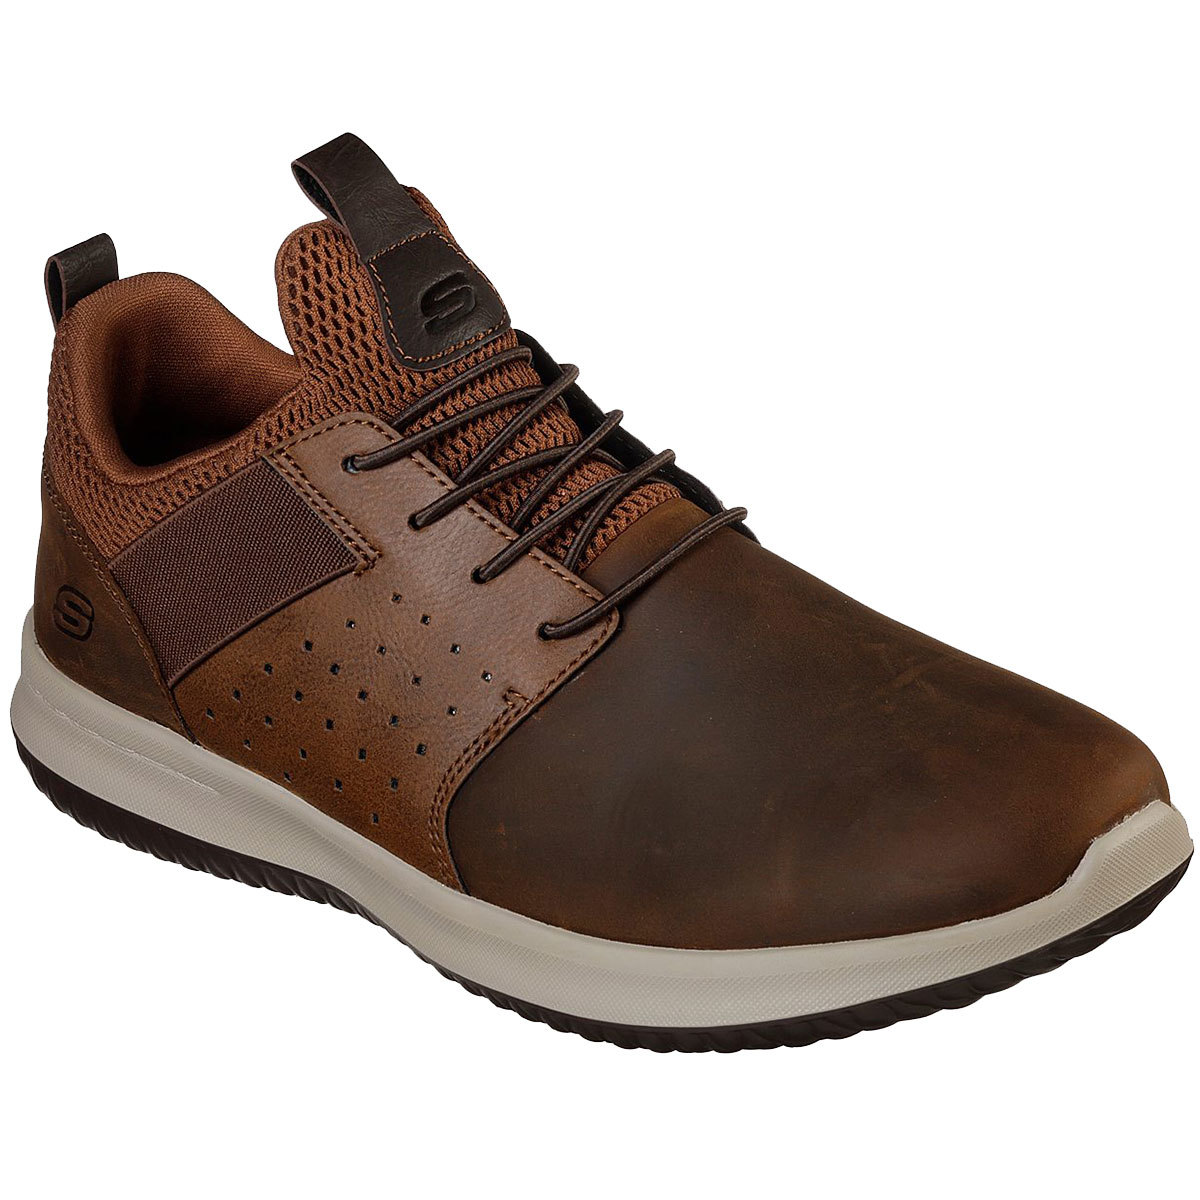 """Skechers Men's Delson A """" Axton Sneakers - Brown, 9.5"""